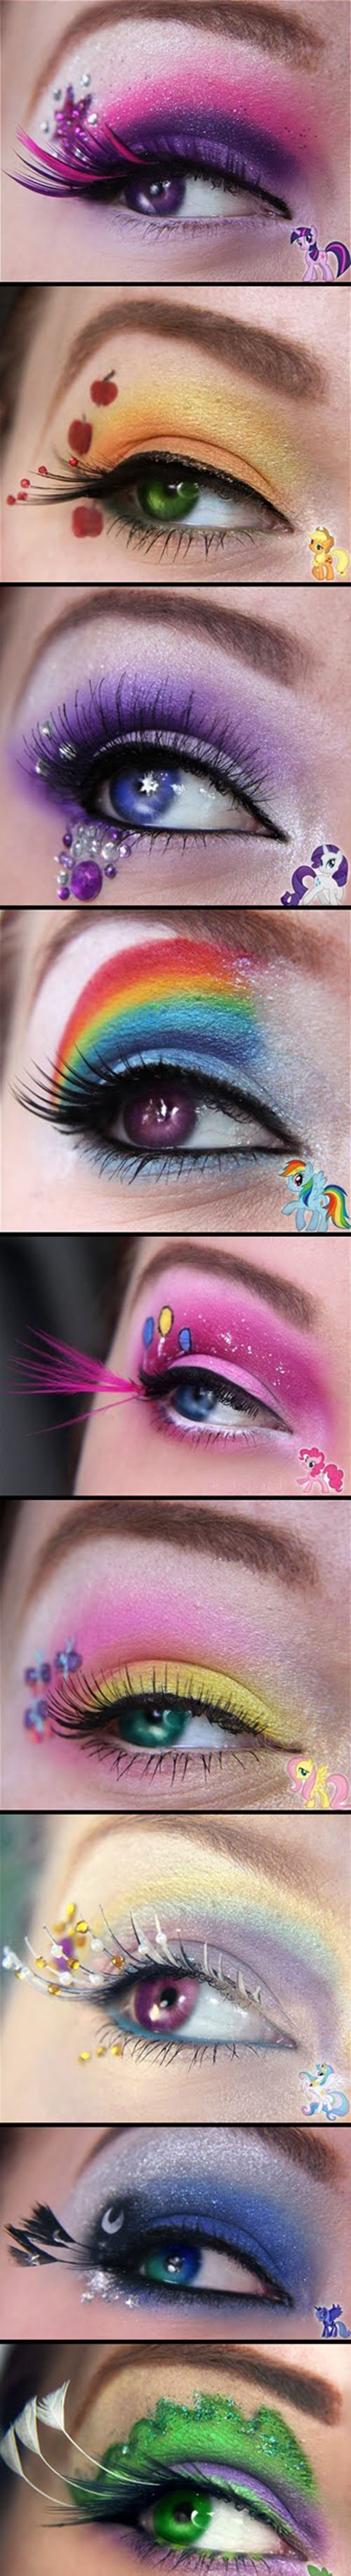 My Little Pony for the eyes! So awesome! In onder they are; Twilght Sparkle, Apple Jack, Rarity, Rainbow Dash, Pinkie Pie, Fluttershy, Princess Celestia, Princess Luna & Spike.